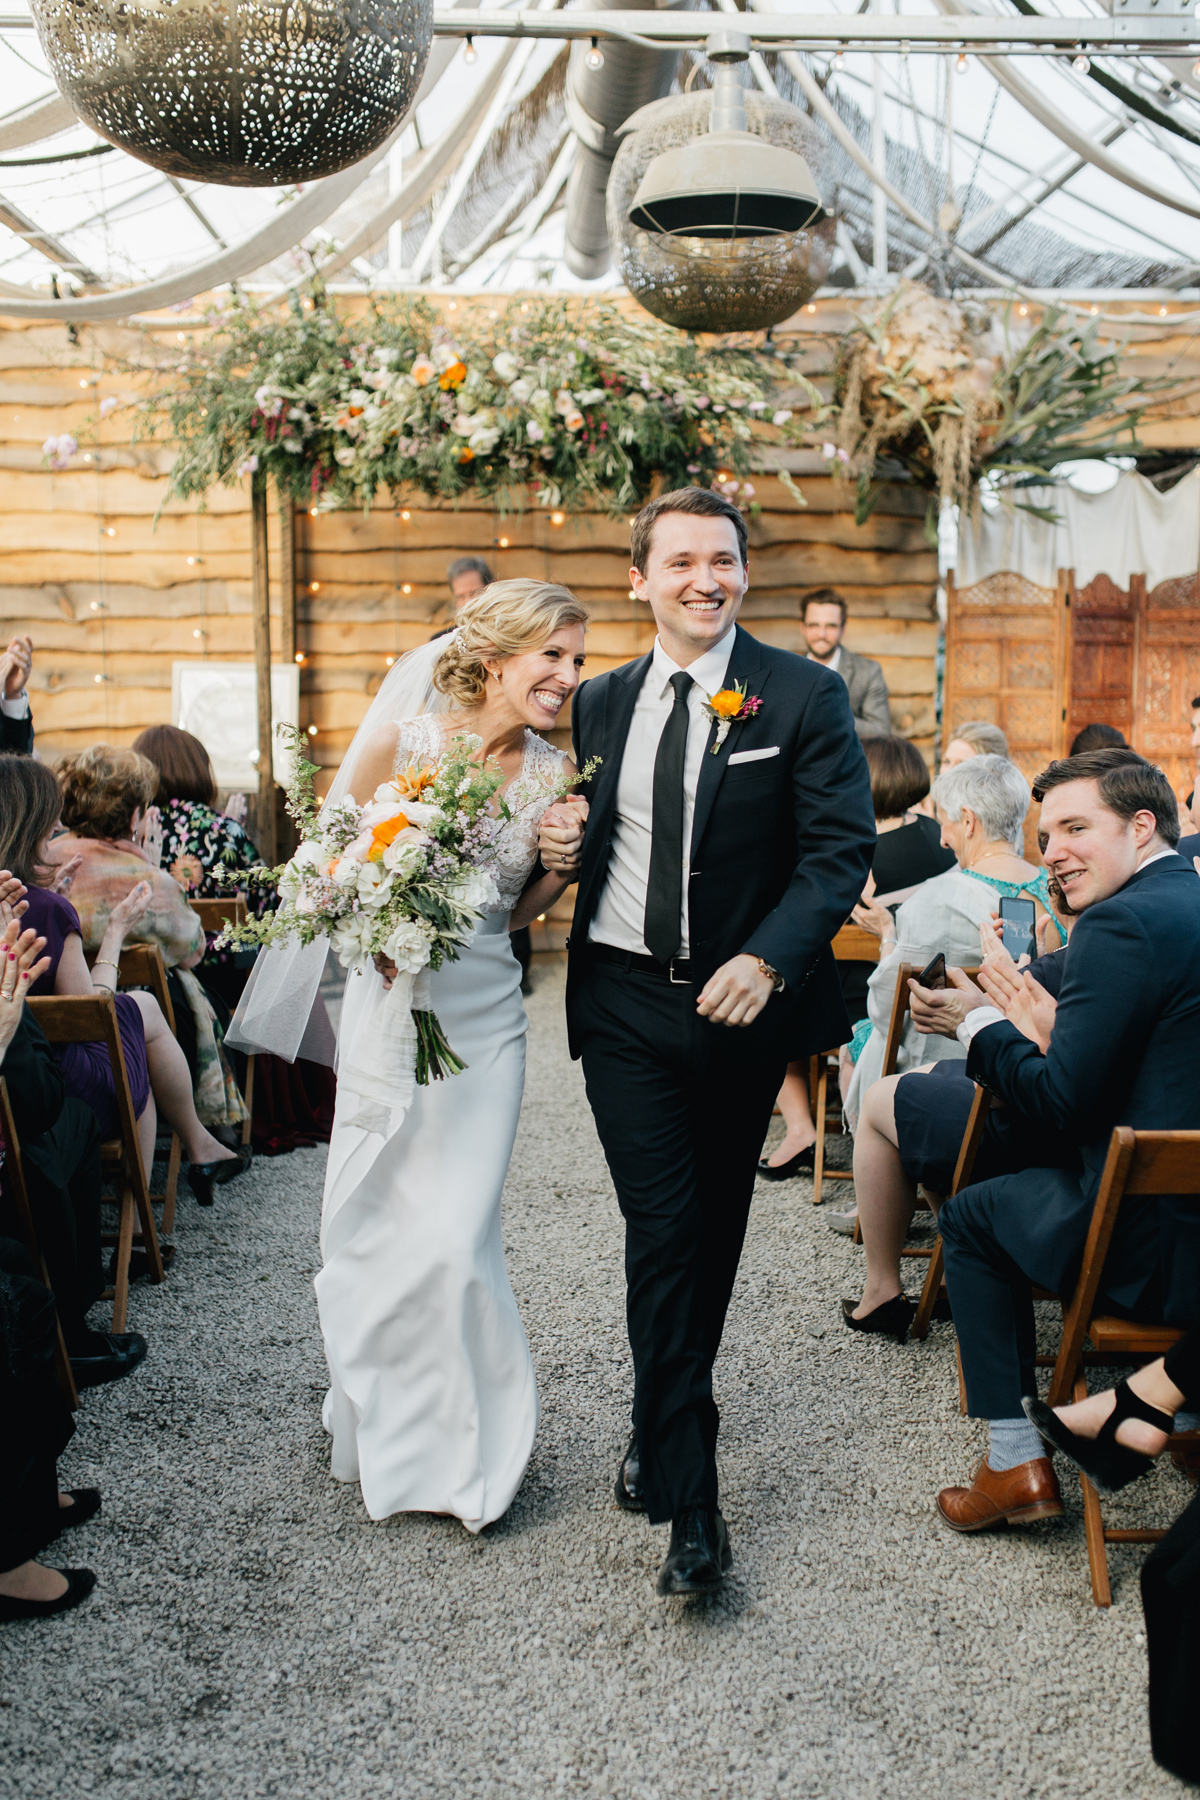 Bright Spring Wedding at Terrain - 030